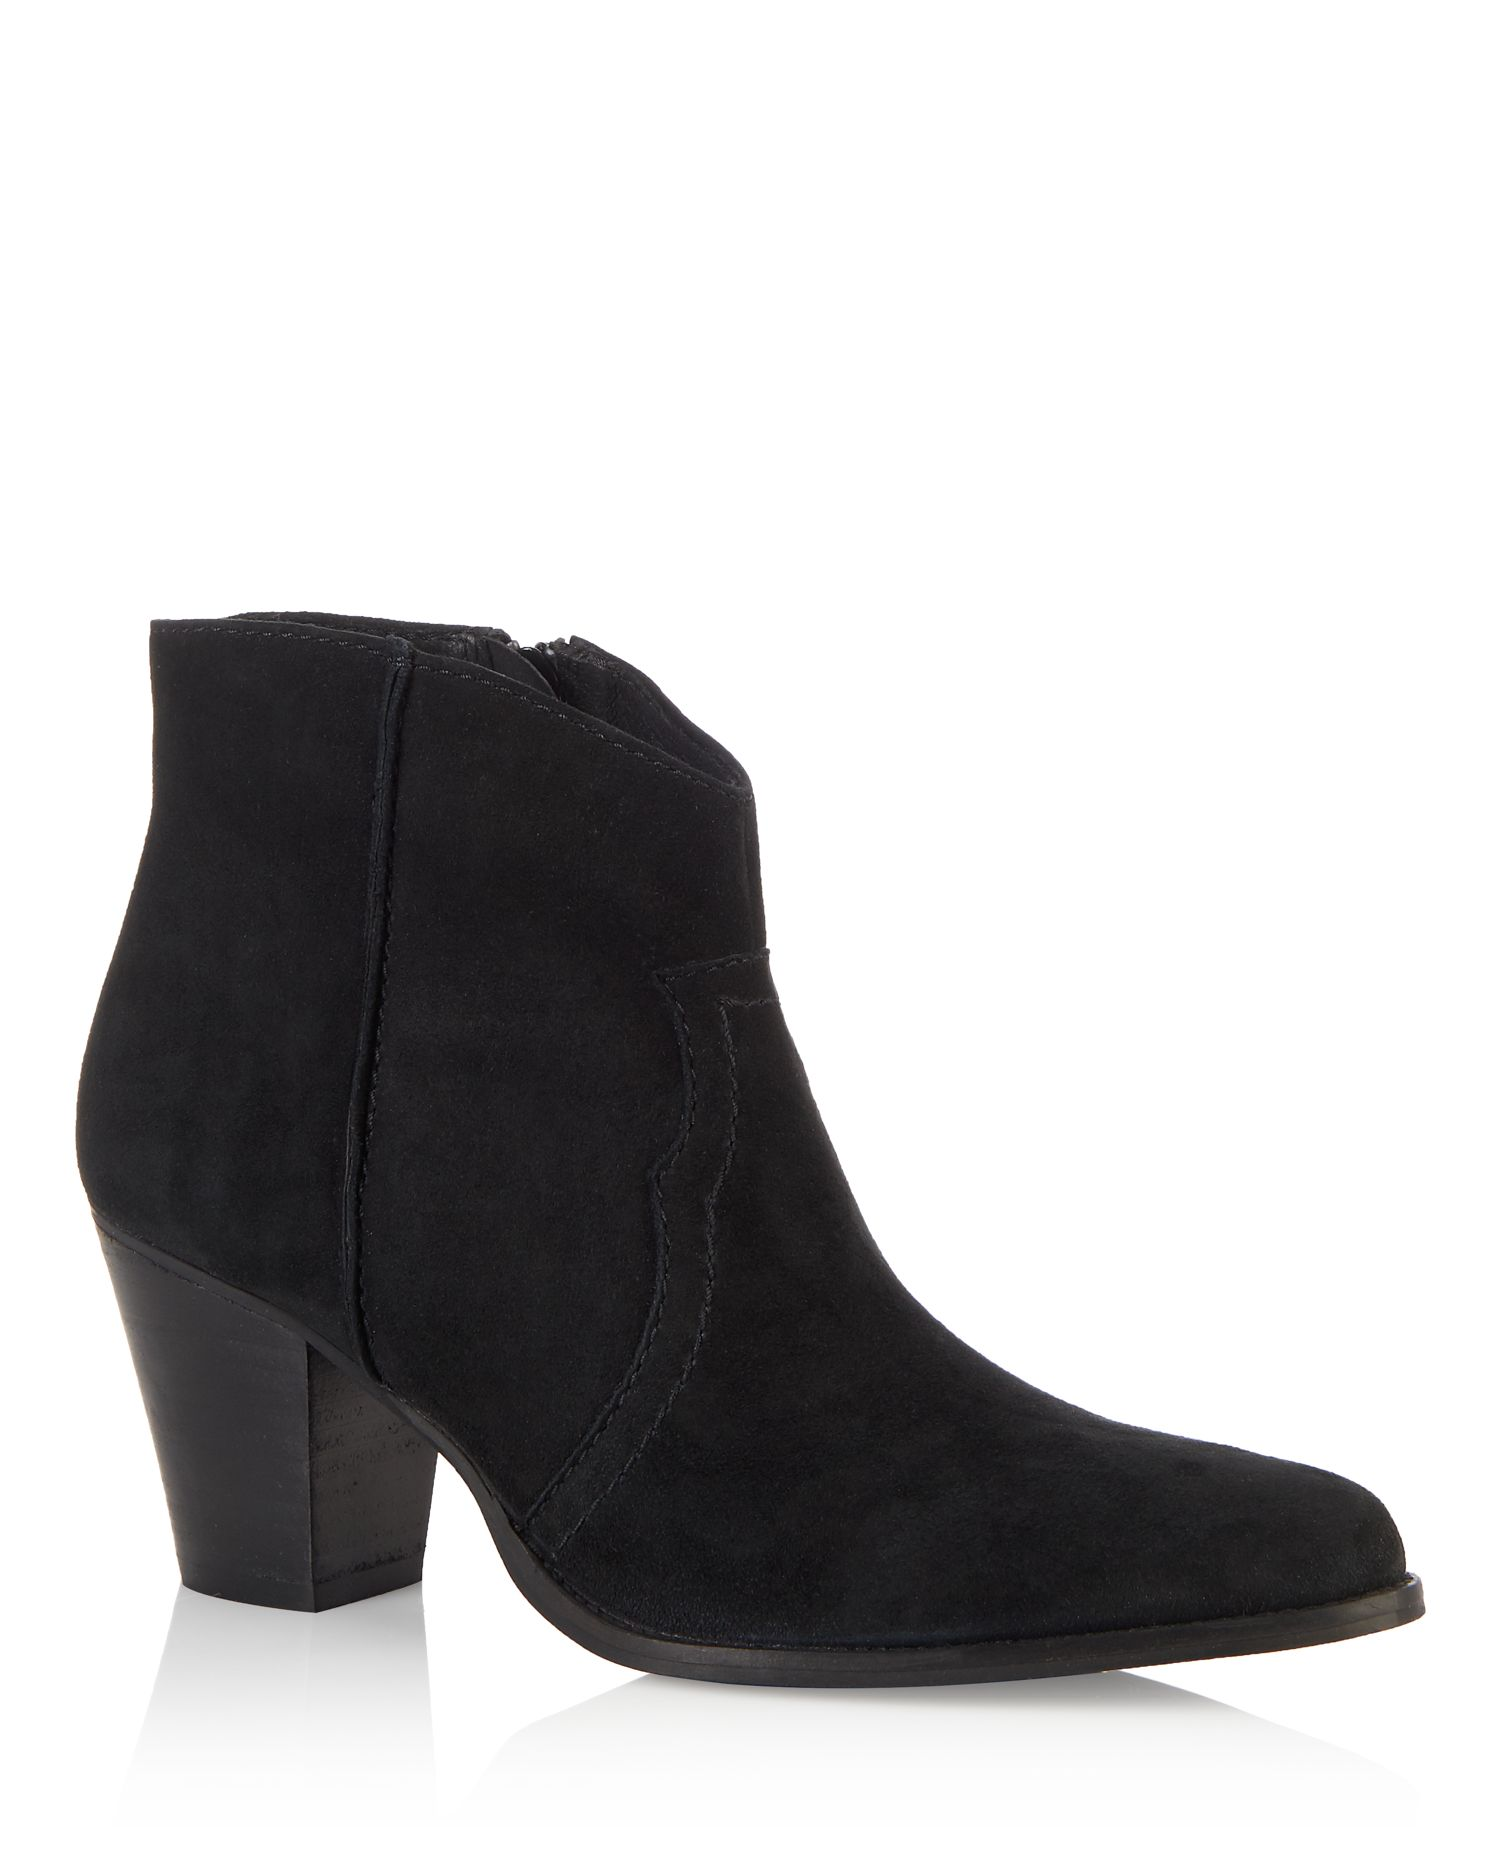 Cara Cara Elderberry ankle boot, Black Suede